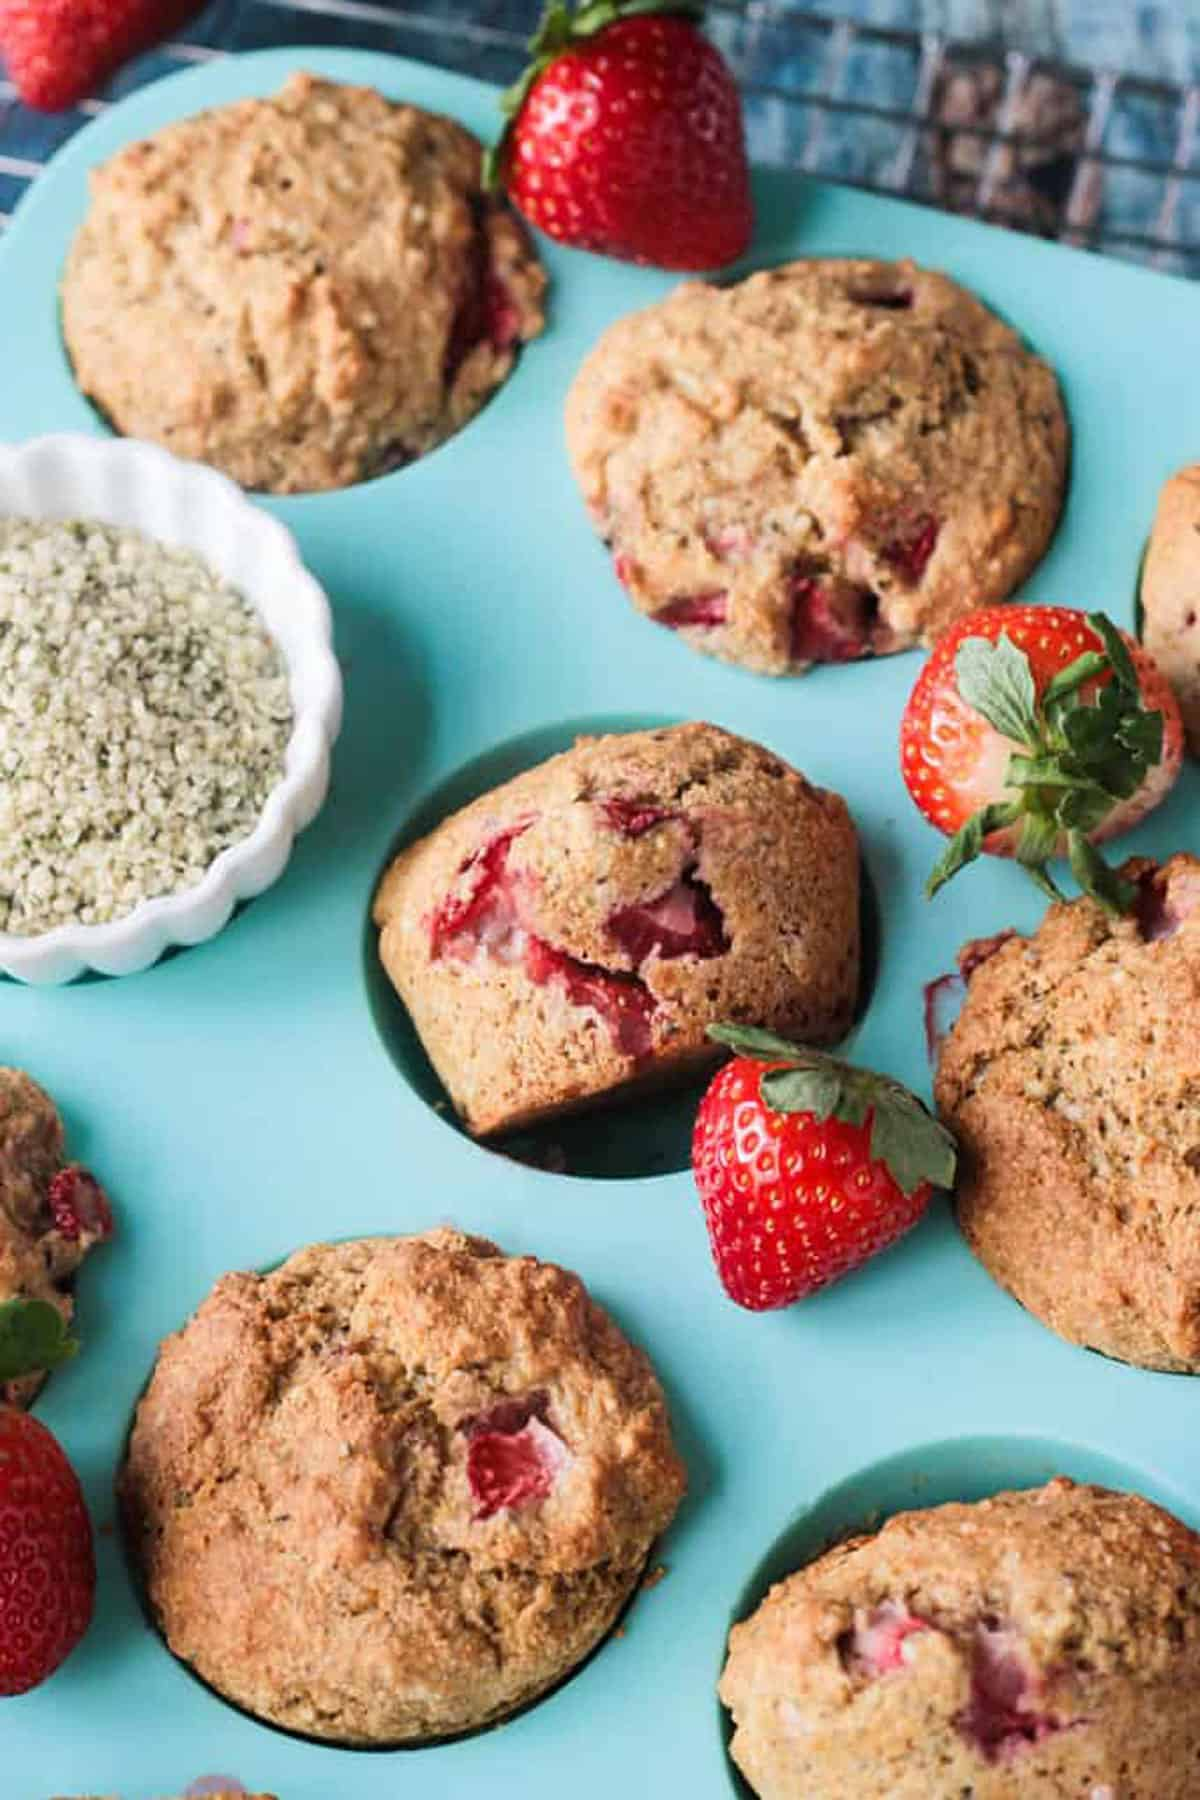 Close up of strawberry pieces in a golden brown muffin.